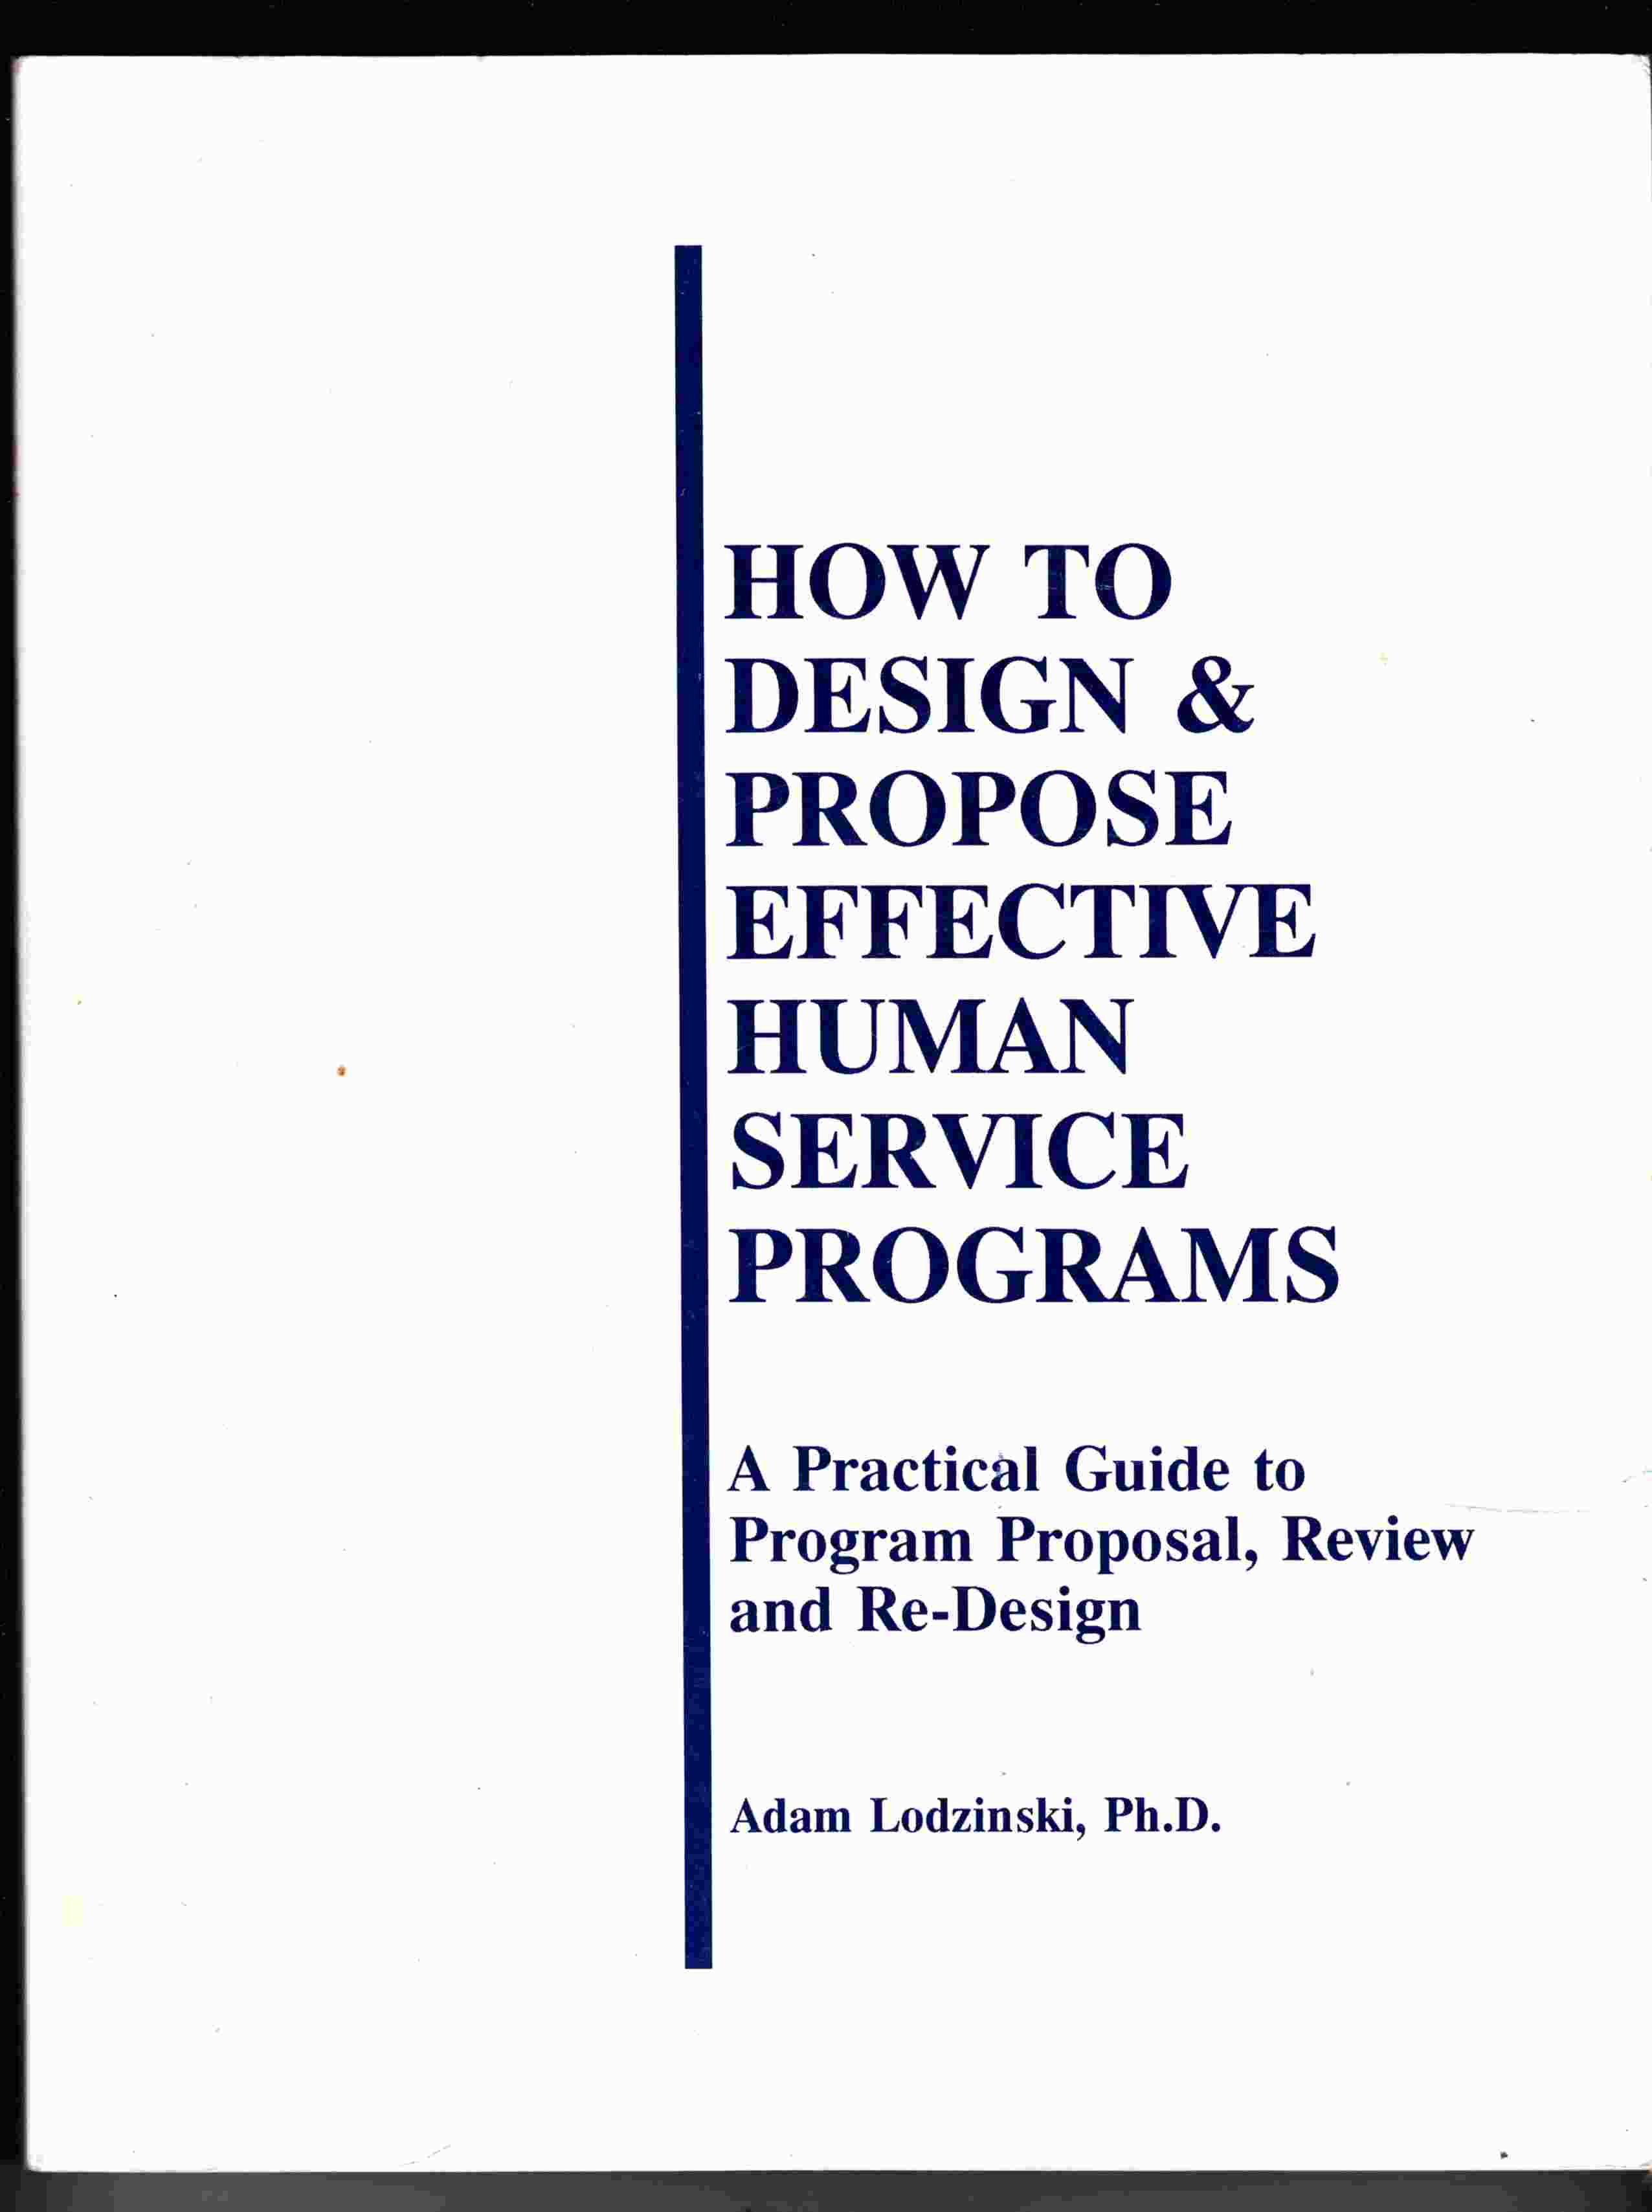 Image for How to Design & Propose Effective Human Service Programs A Practical Guide to Program Proposal, Review and Re-Design